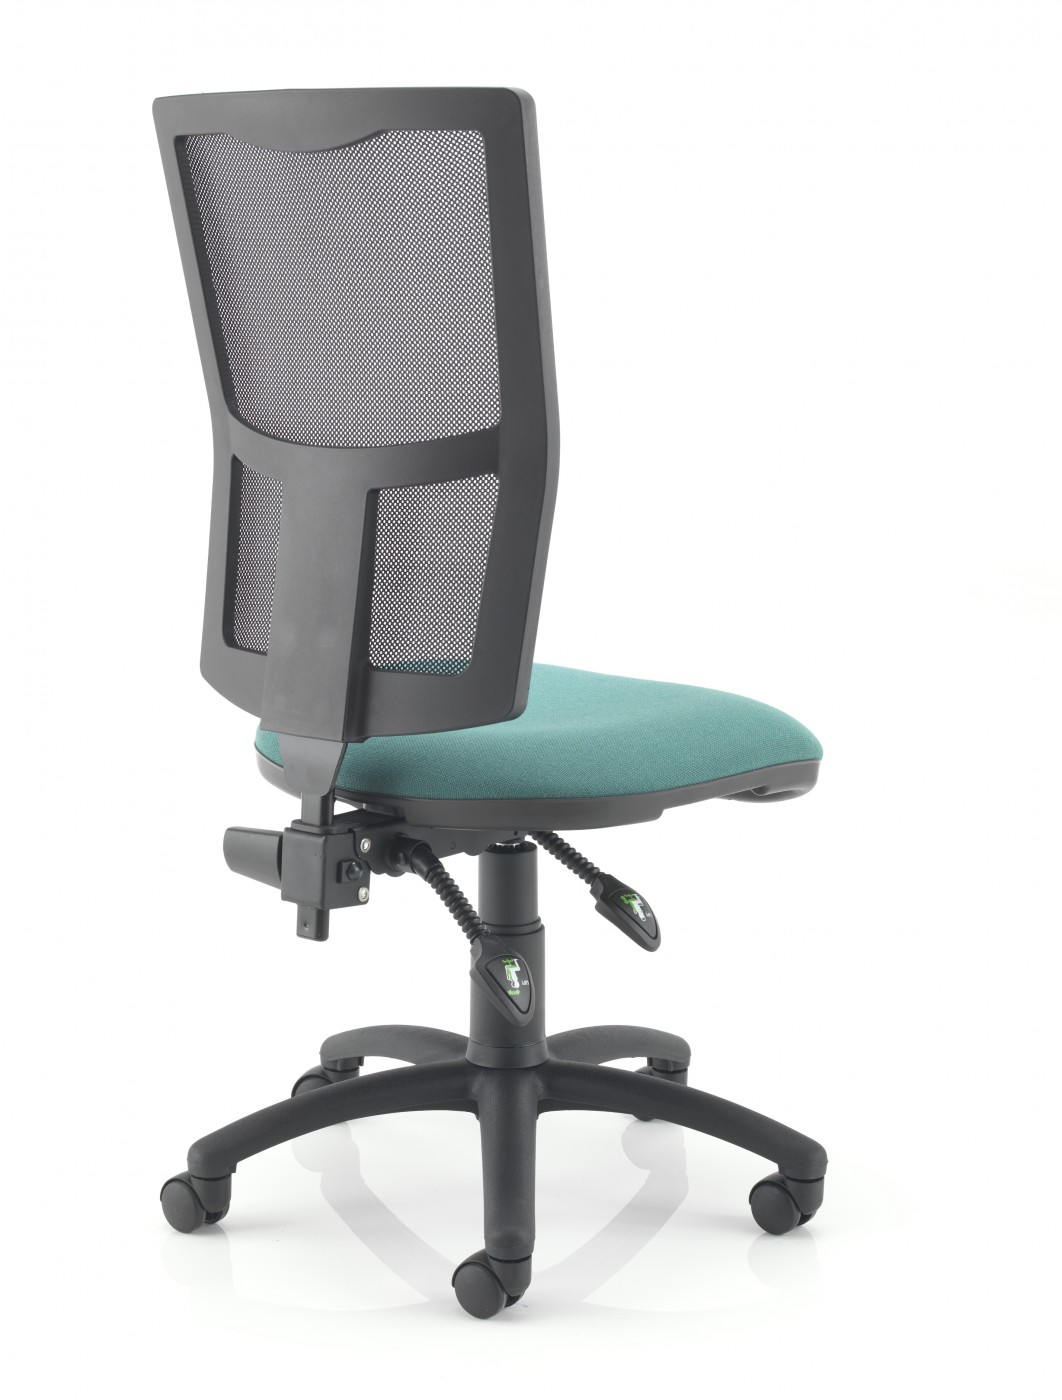 office chair mesh kids bed tc ch2803 121 furniture